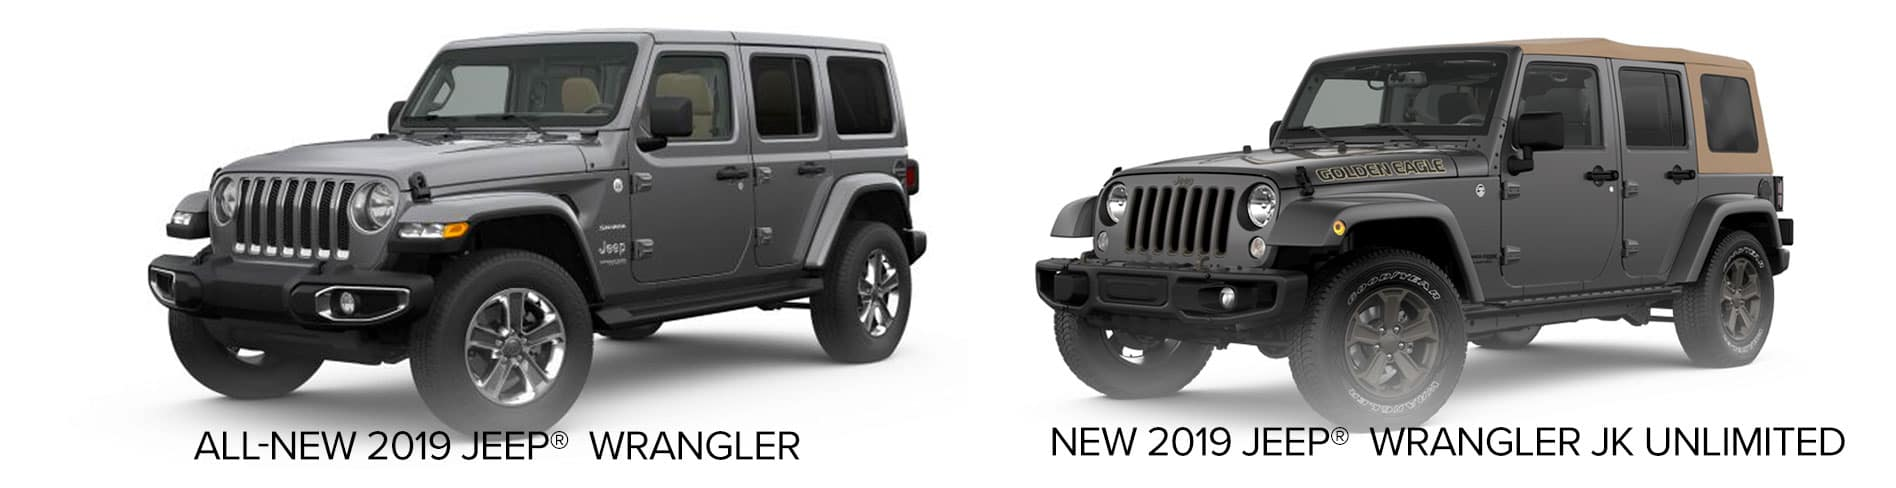 Jeep Wrangler Sport vs Jeep Wrangler JK Chicago IL